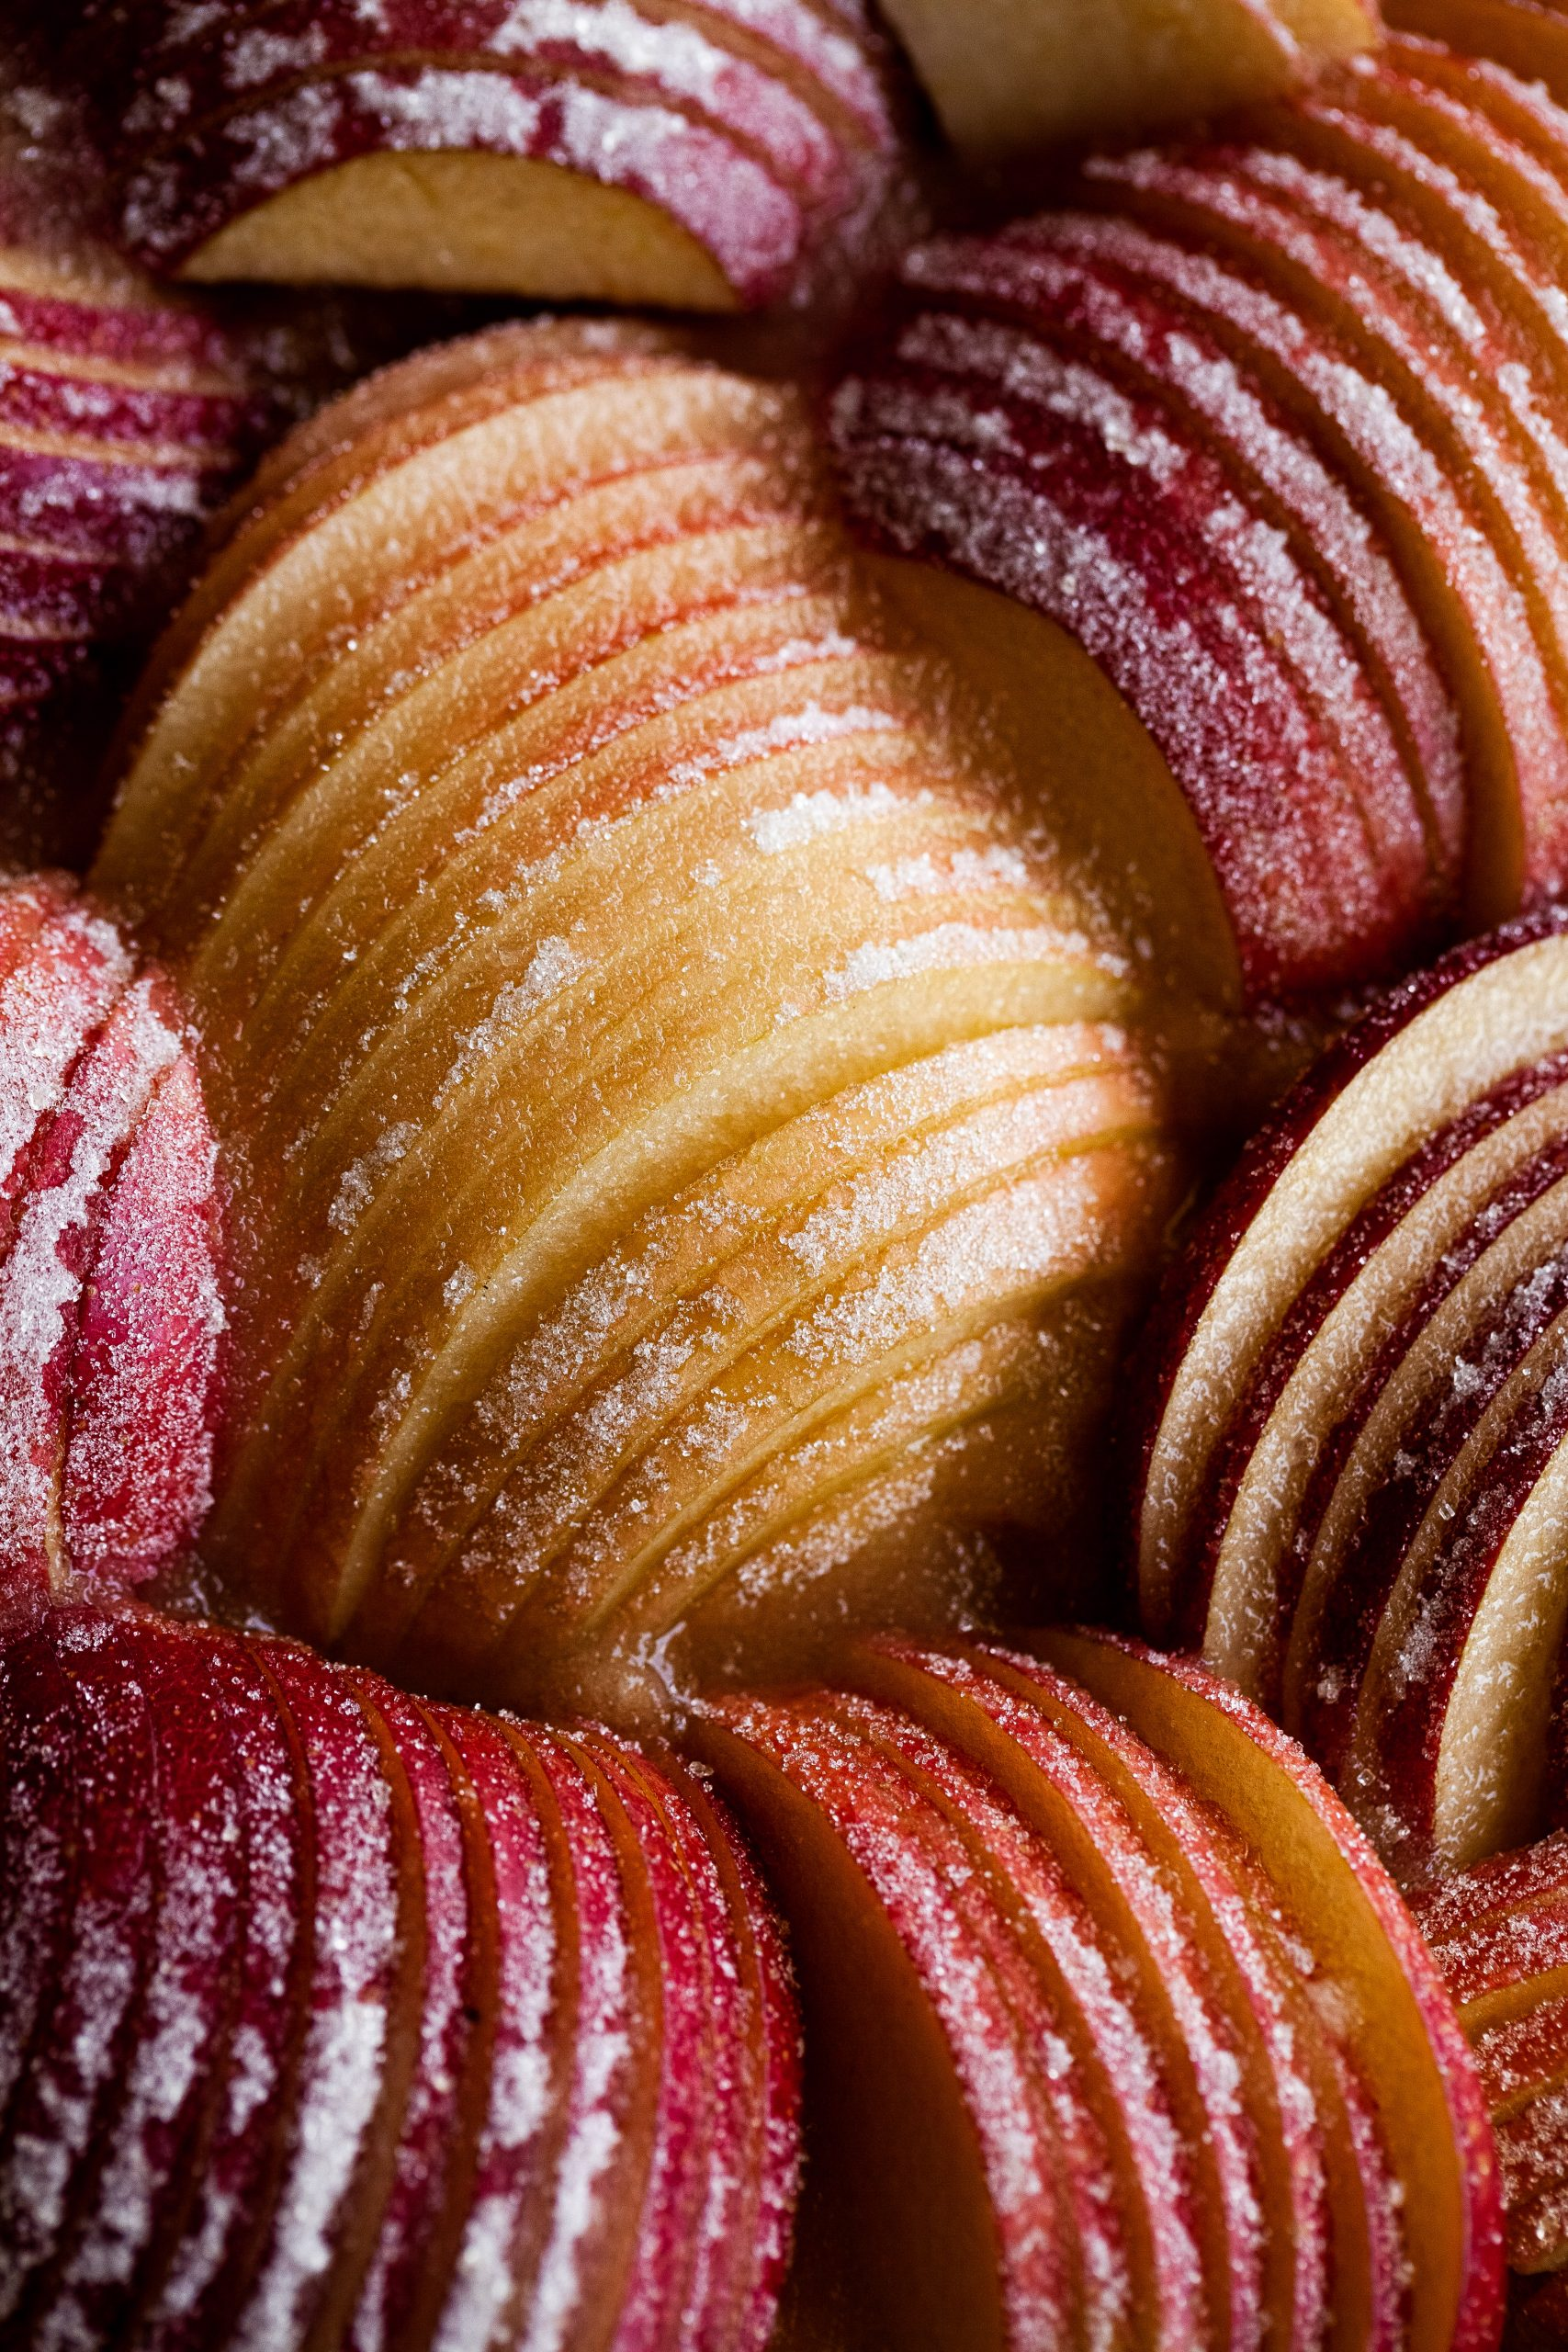 overhead close up of apple slices coated in sugar.